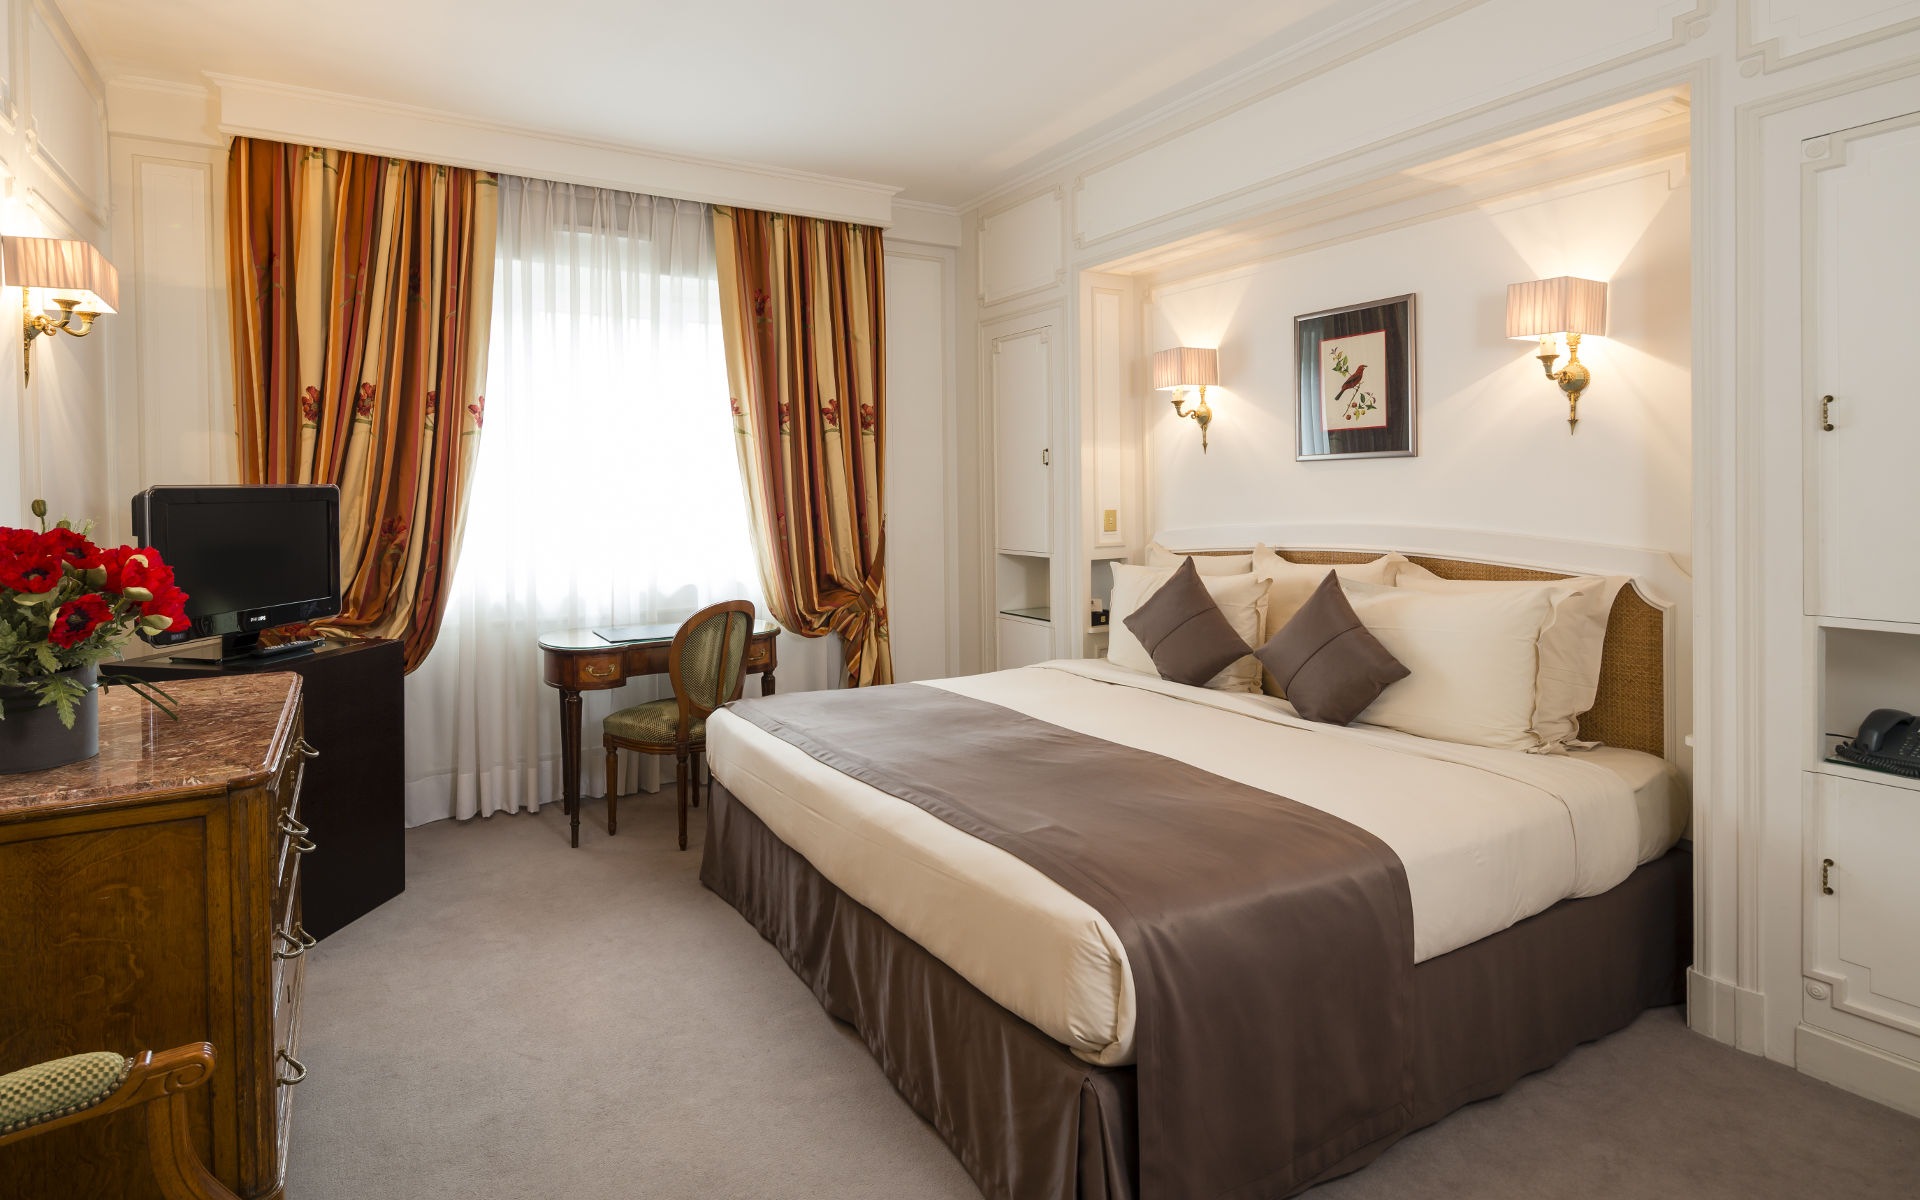 260/Rooms/Superieure/Room_Executive_5_-__Majestic_Hotel-Spa.jpg